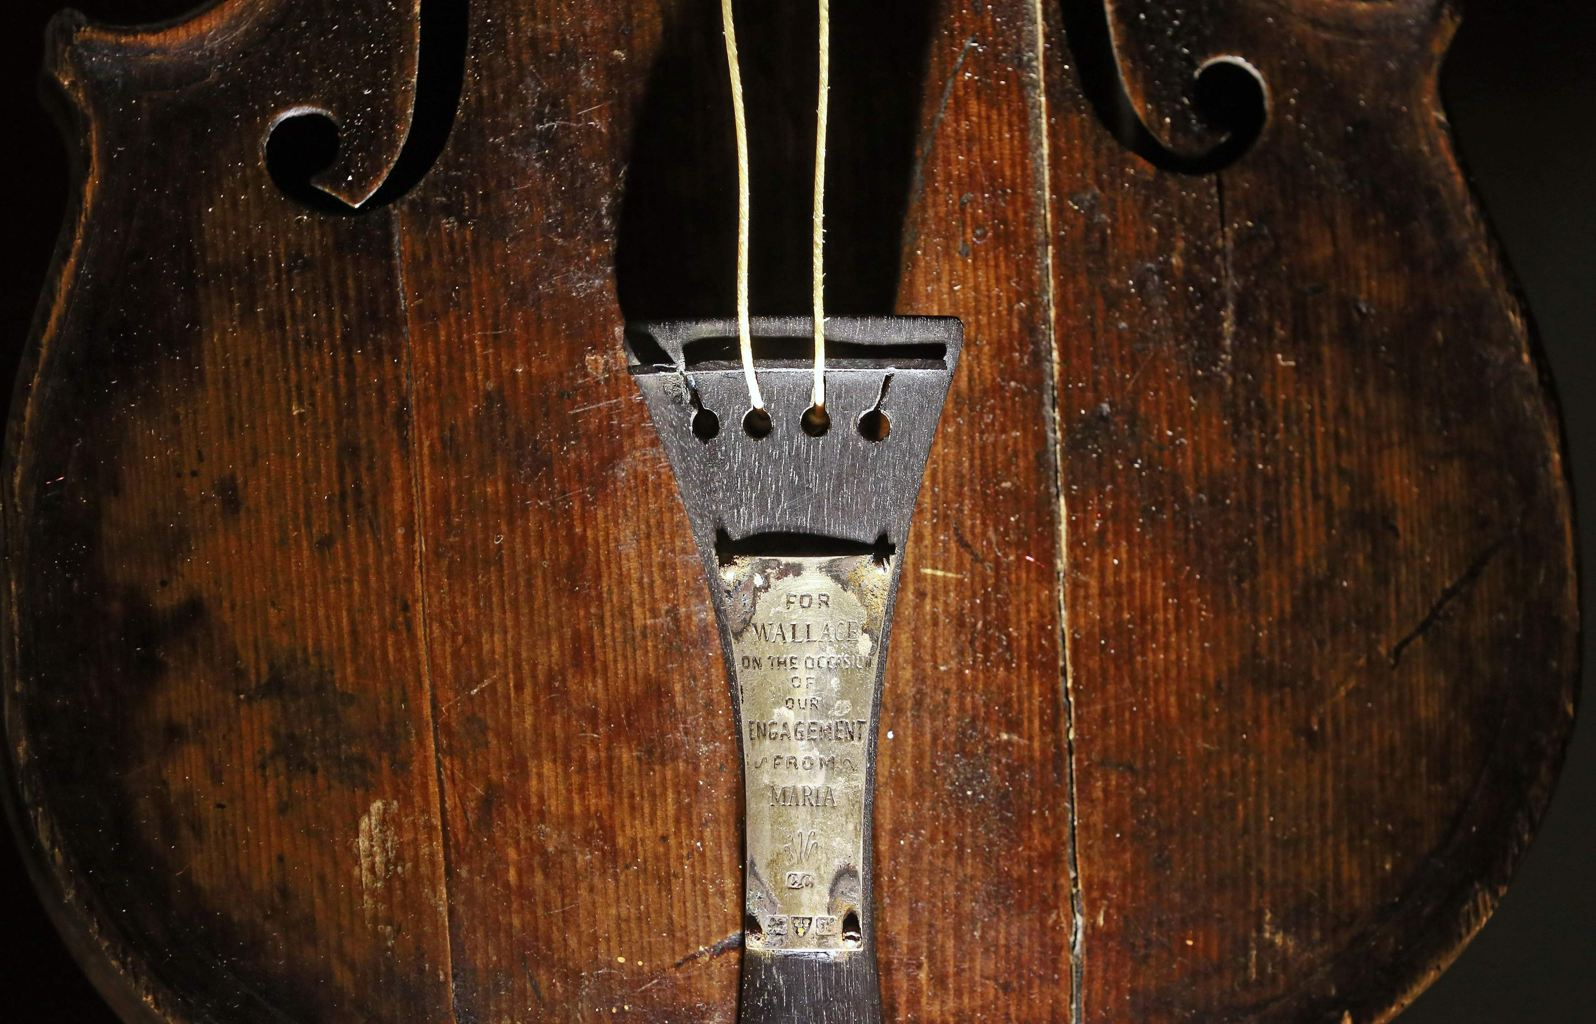 The violin belonging to Titanic bandmaster Wallace Hartley actually looks pretty creepy on display at the Titanic Belfast Centre. Photo from Reuters.com